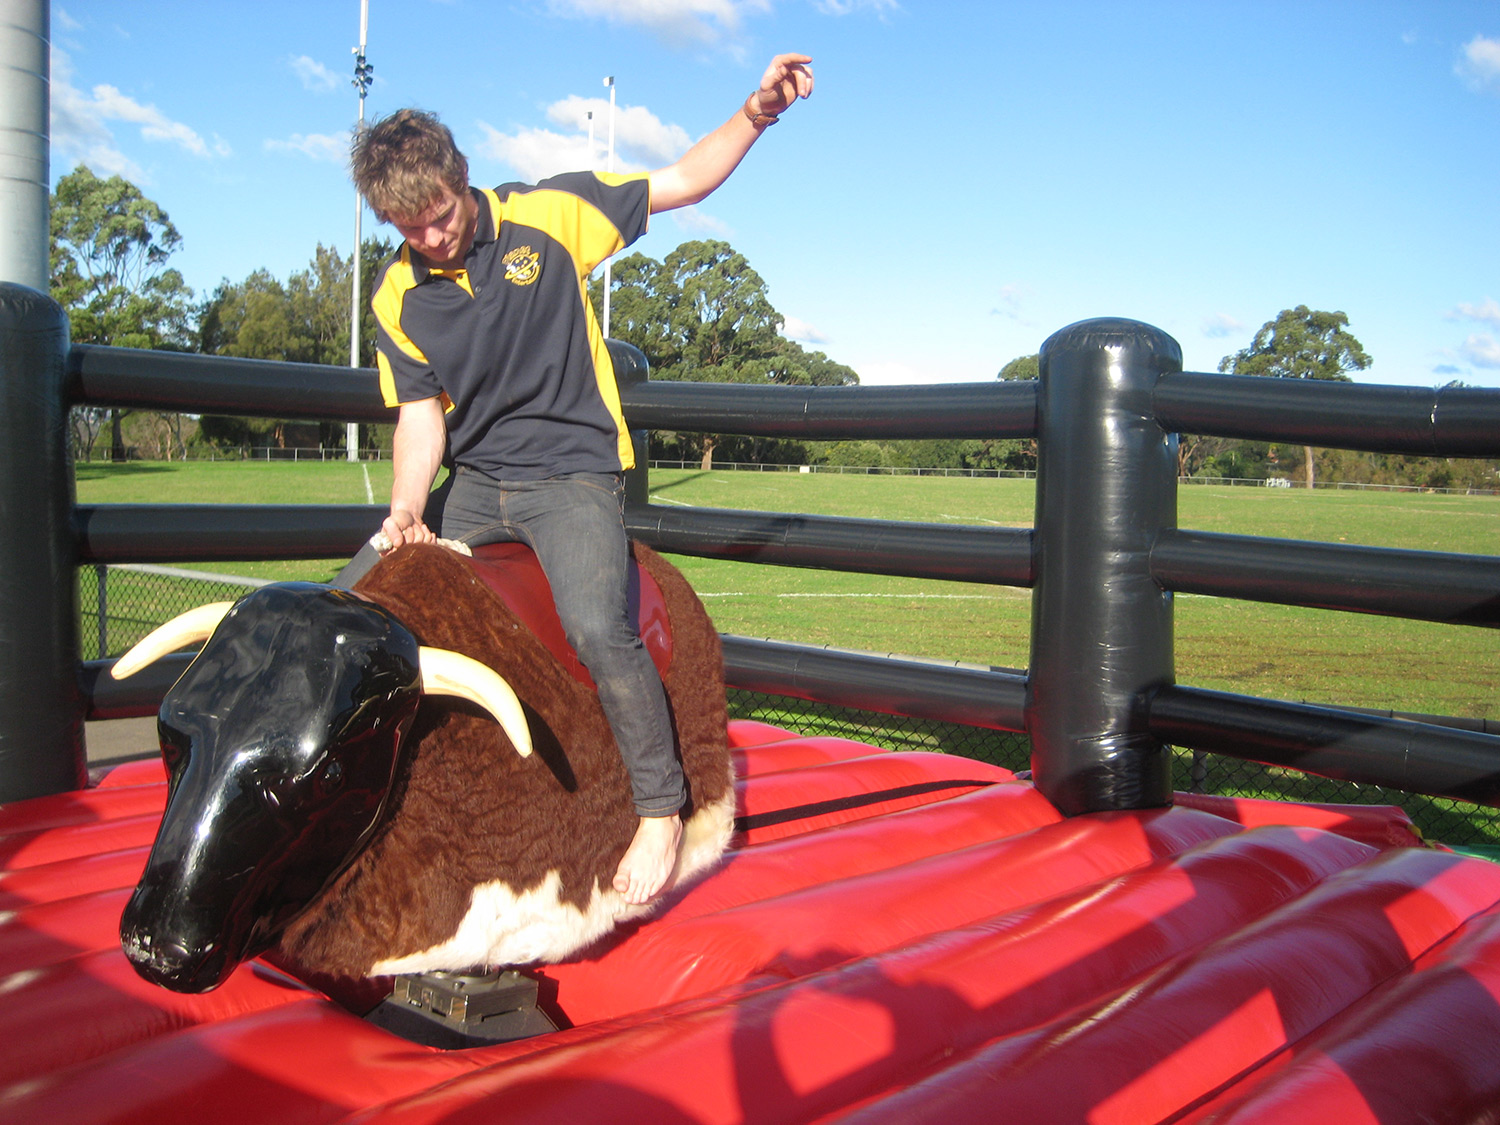 Mechanical Bull Rental: The Best Way to Boost Your Party